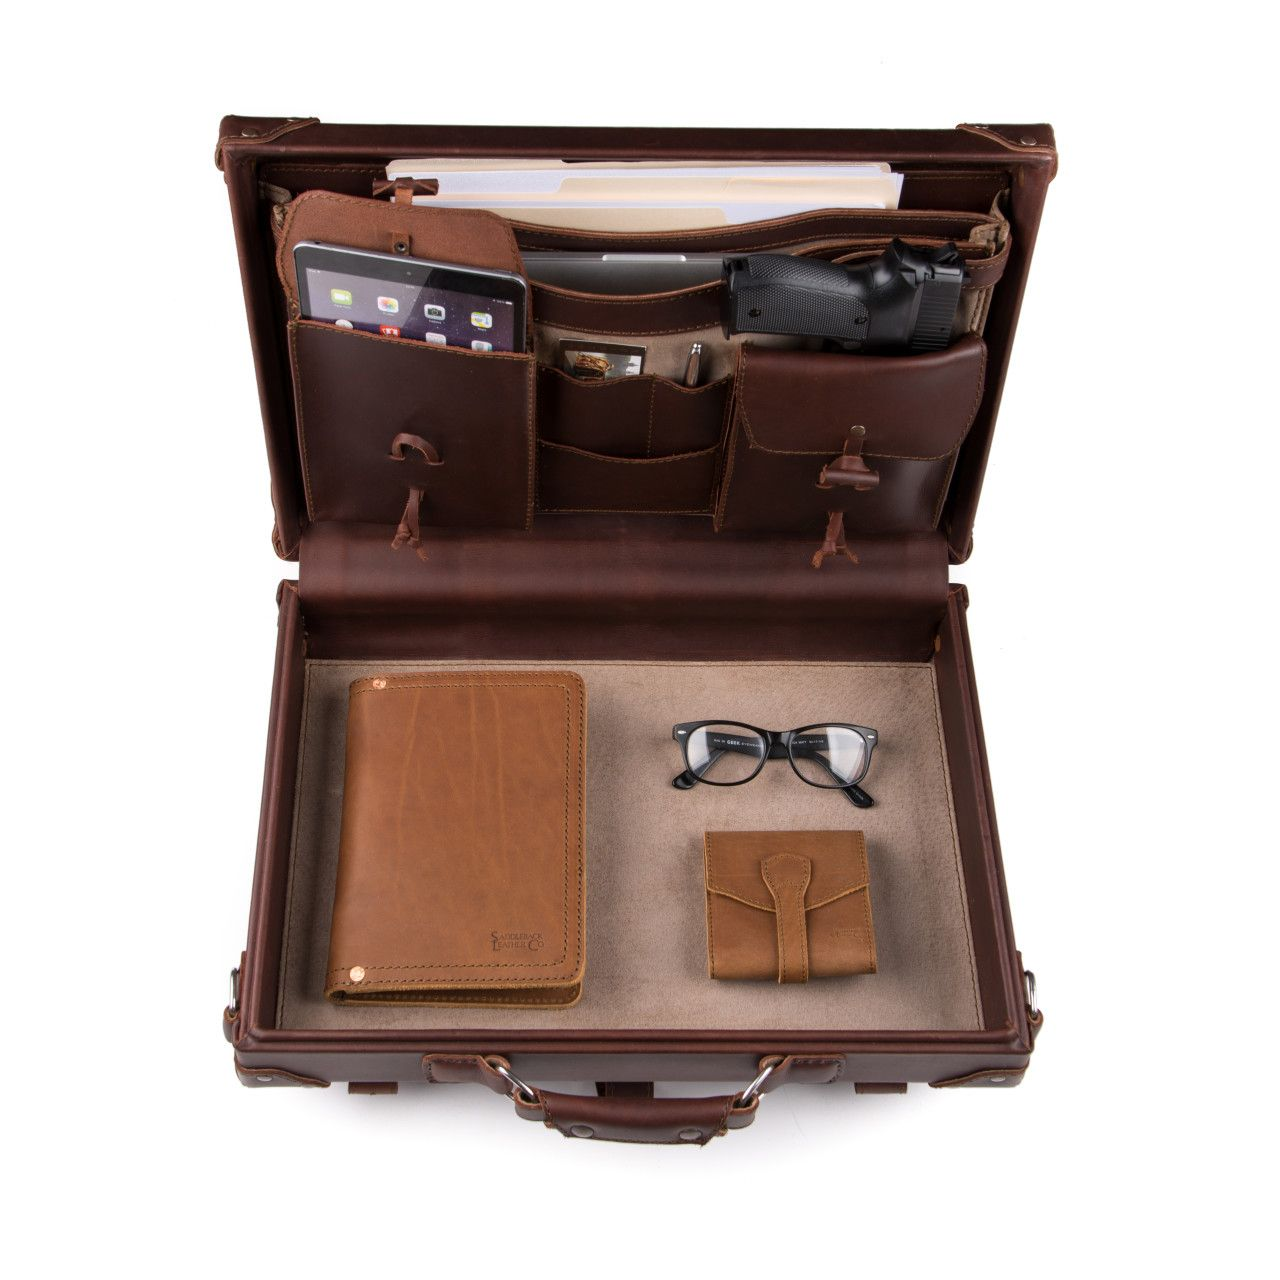 hard sided leather briefcase medium in chestnut leather is great for office stuff